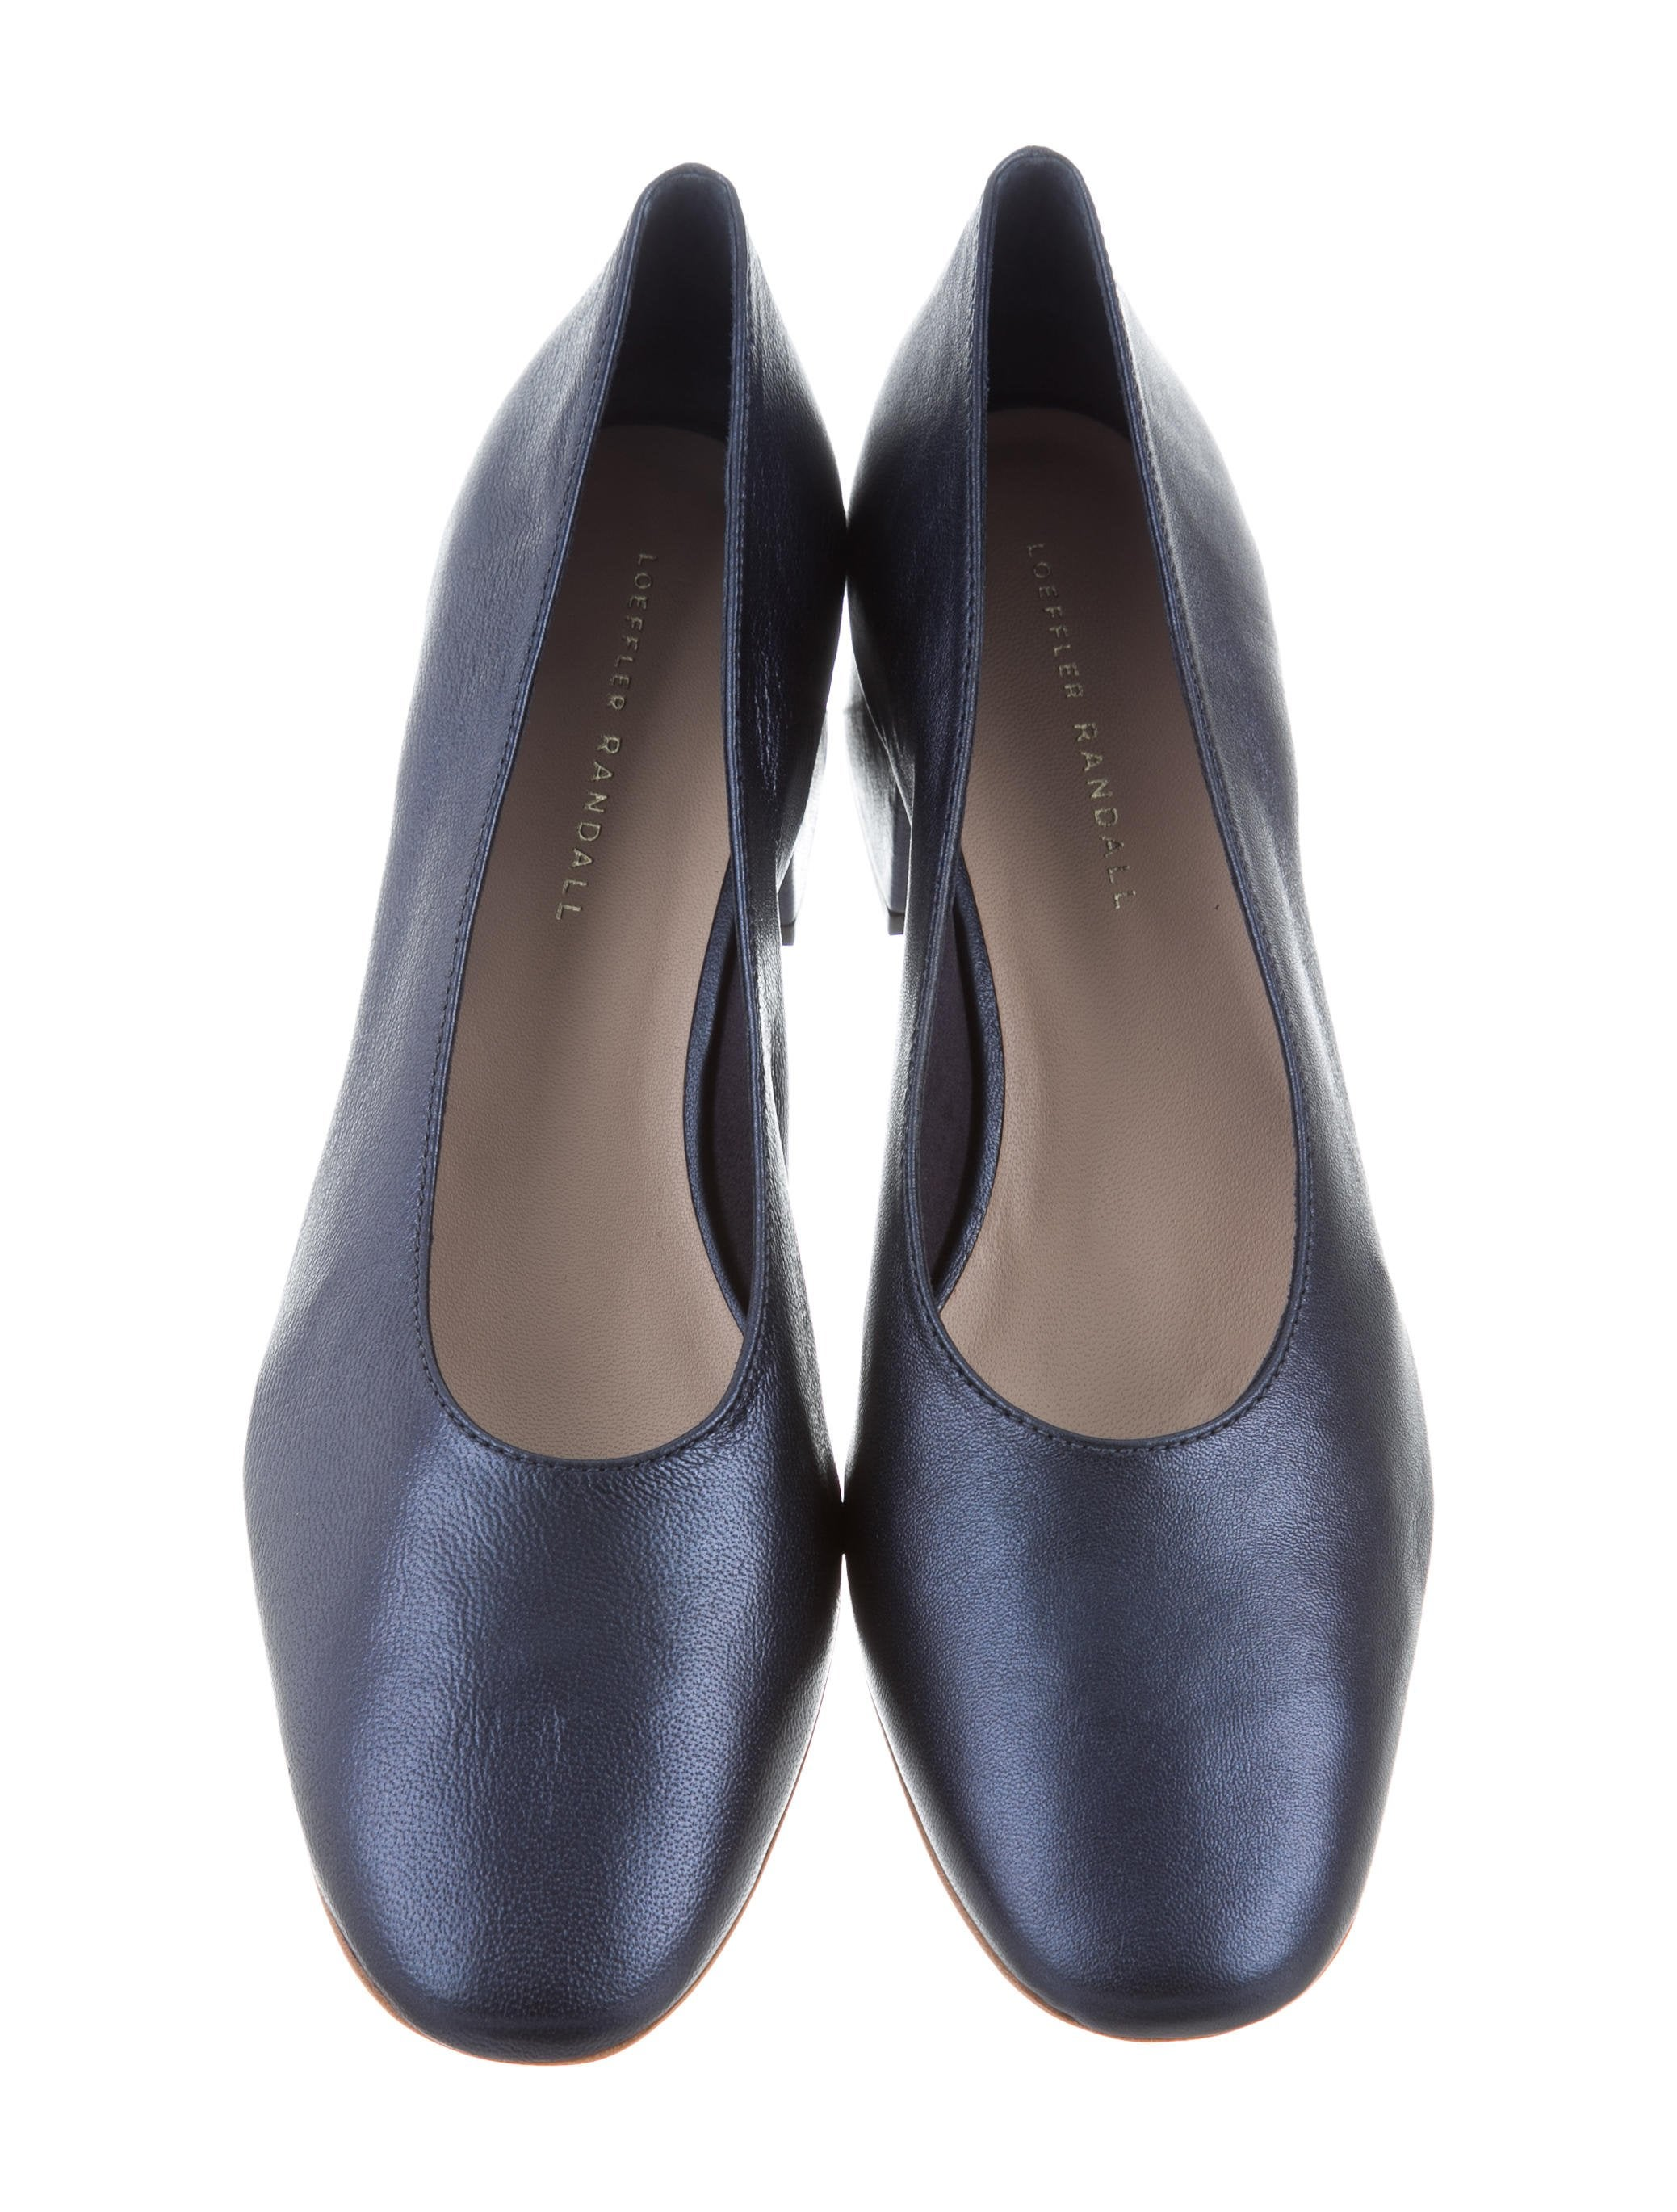 Loeffler Randall Brooks Leather Pumps w/ Tags sale looking for LaLwfCAmCA